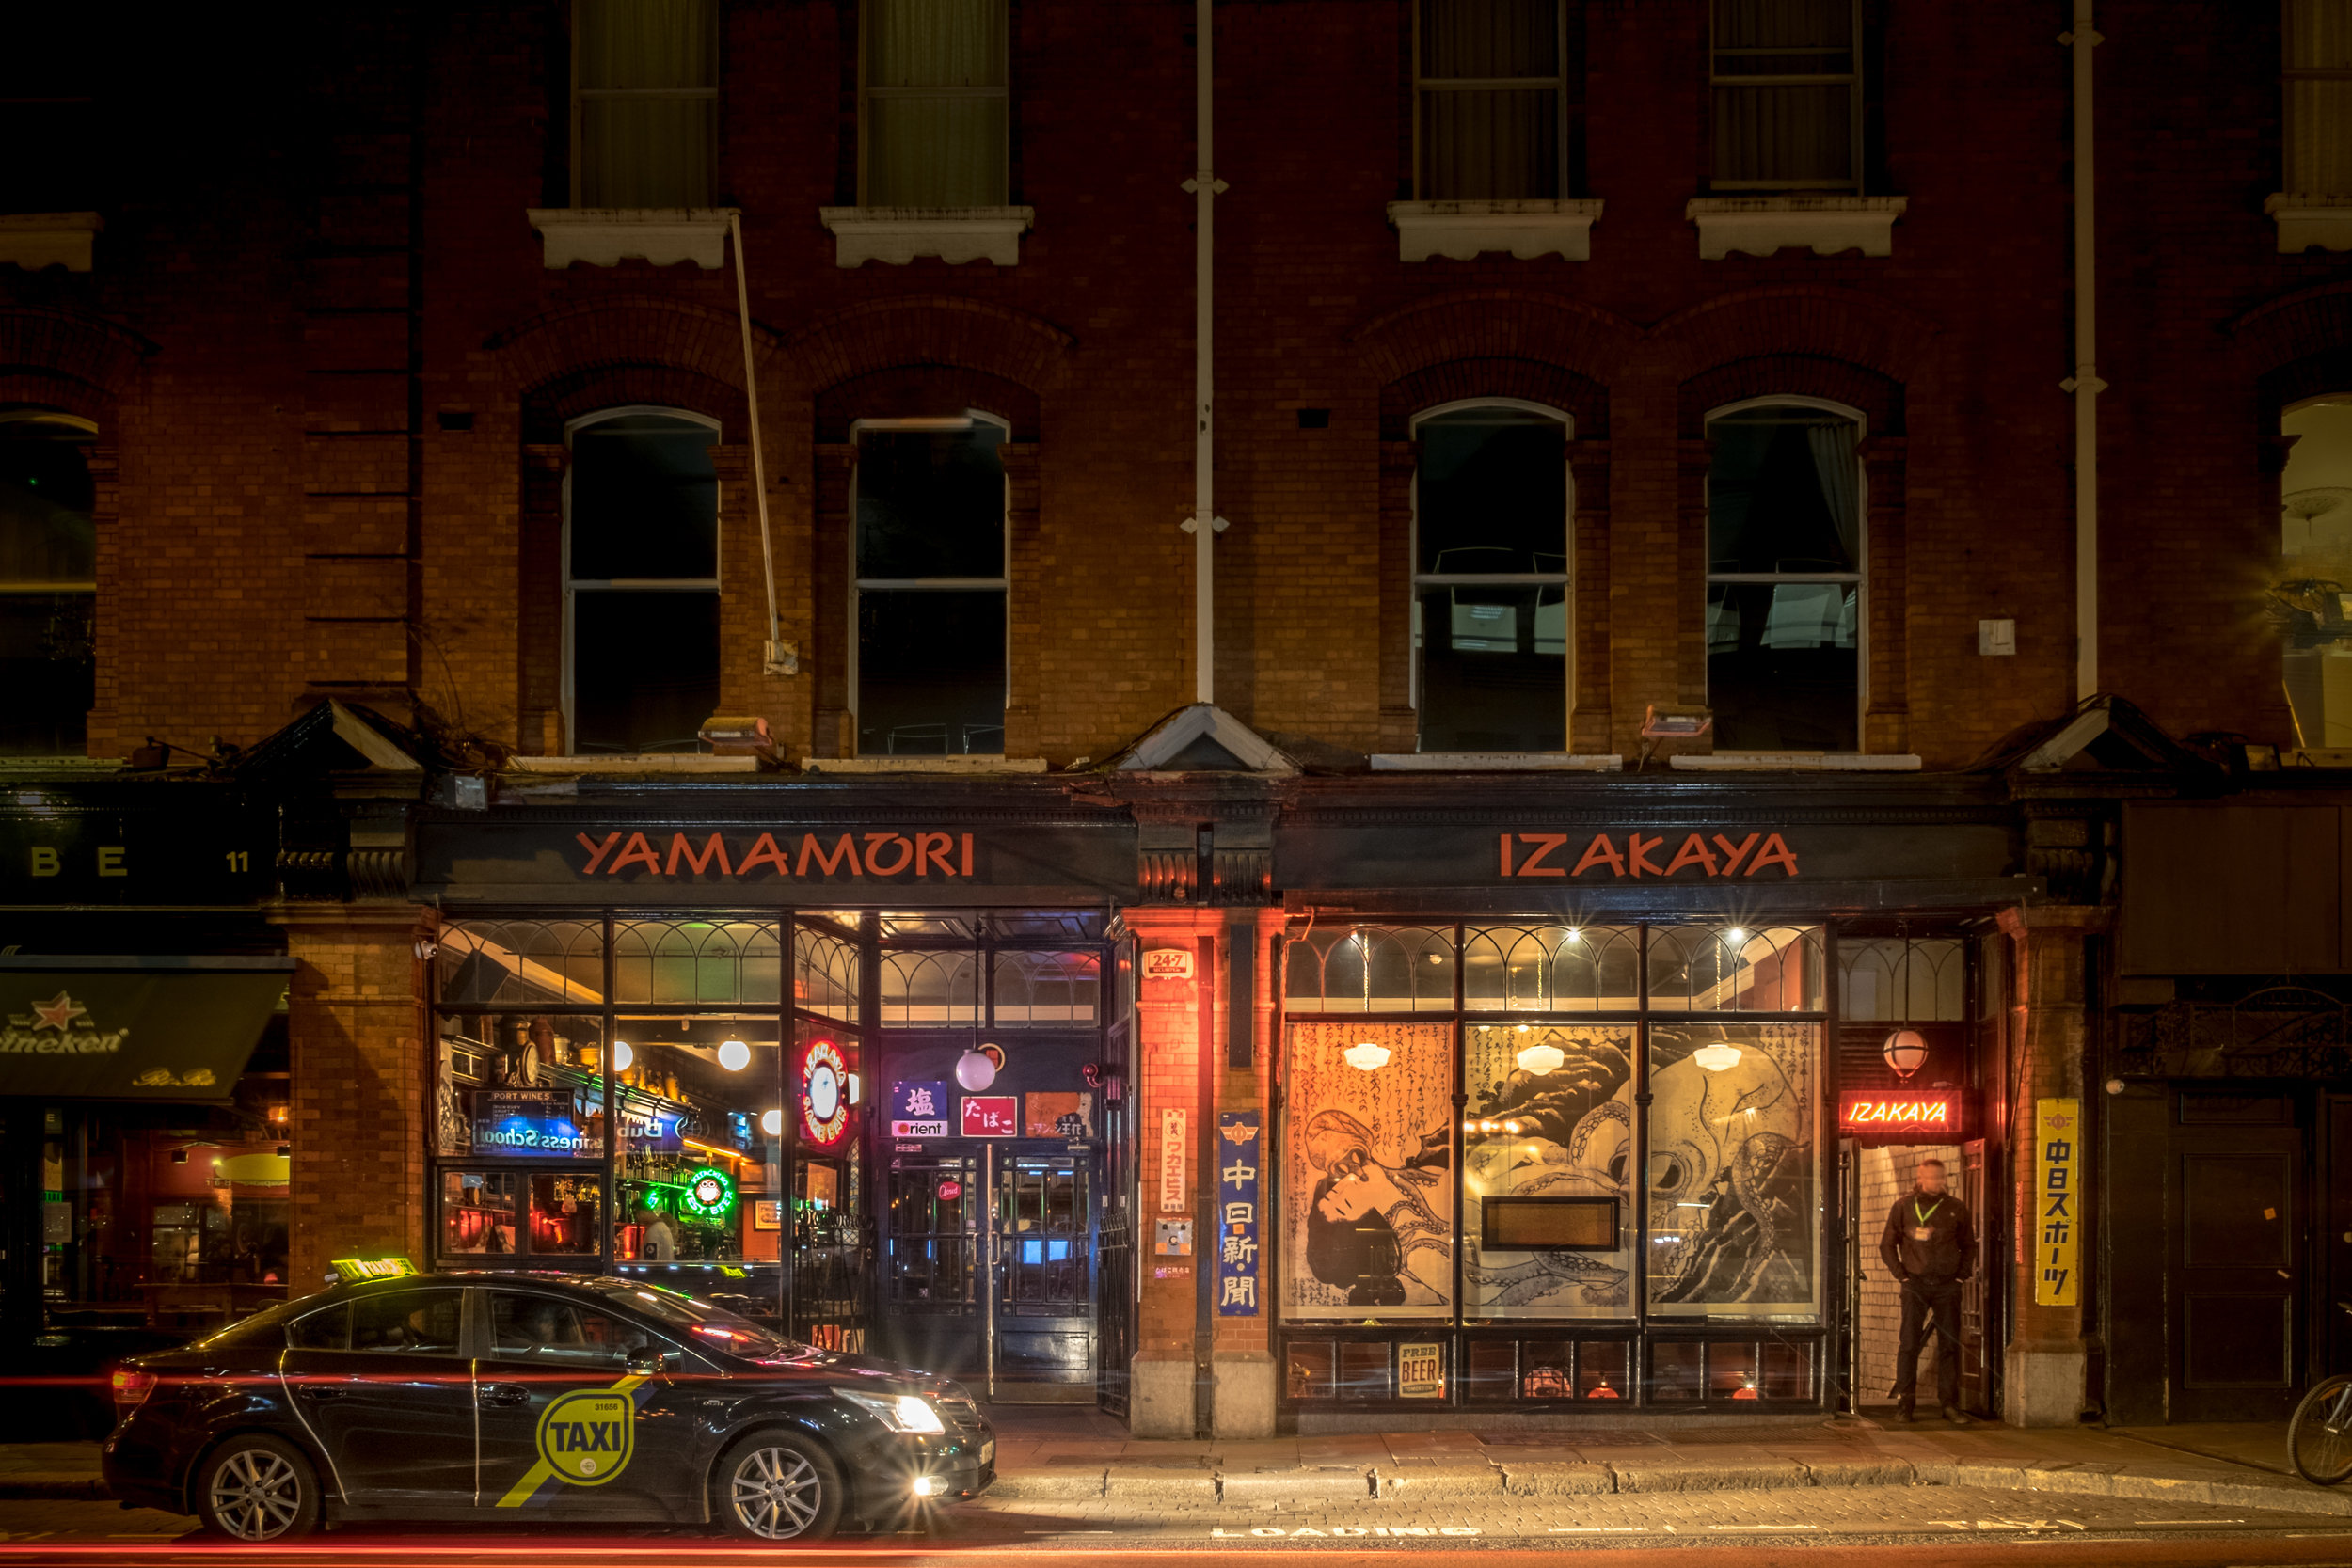 Exterior Lighting - We installed neon signage and antique globe lights which are technically interior but they were installed with the intention of catching the eye of people outside as well as illuminating specific areas inside.